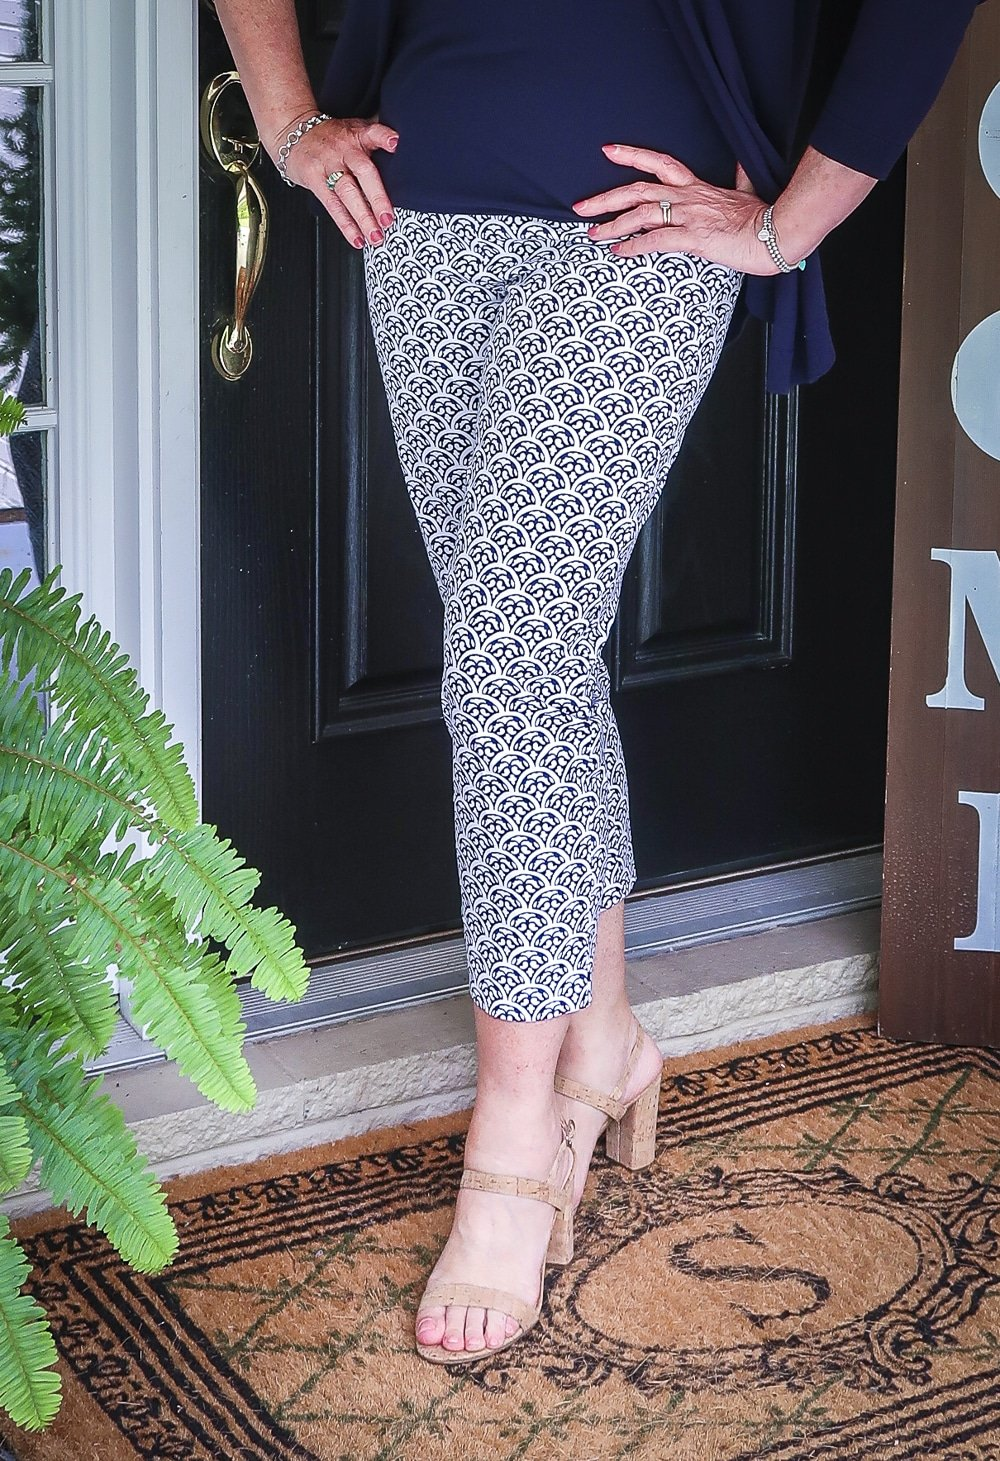 Fashion Blogger 50 Is Not Old is wearing blue and white ankle pants